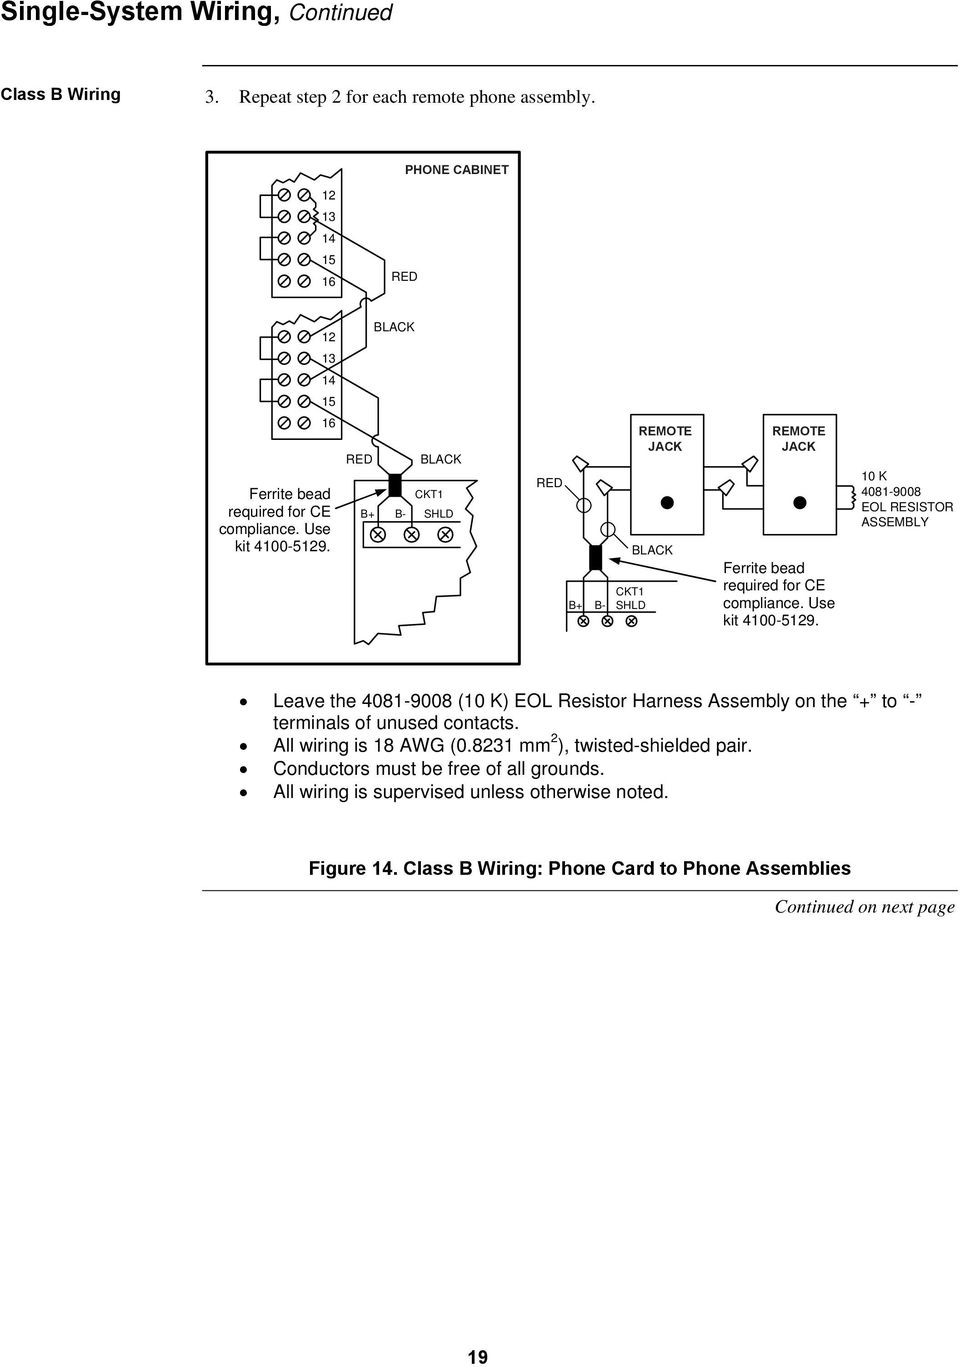 Fire Fighter Phone System Installation Instructions Pdf Eol Resistor Wiring Diagram Red Black Ckt1 B Shld Remote Jack